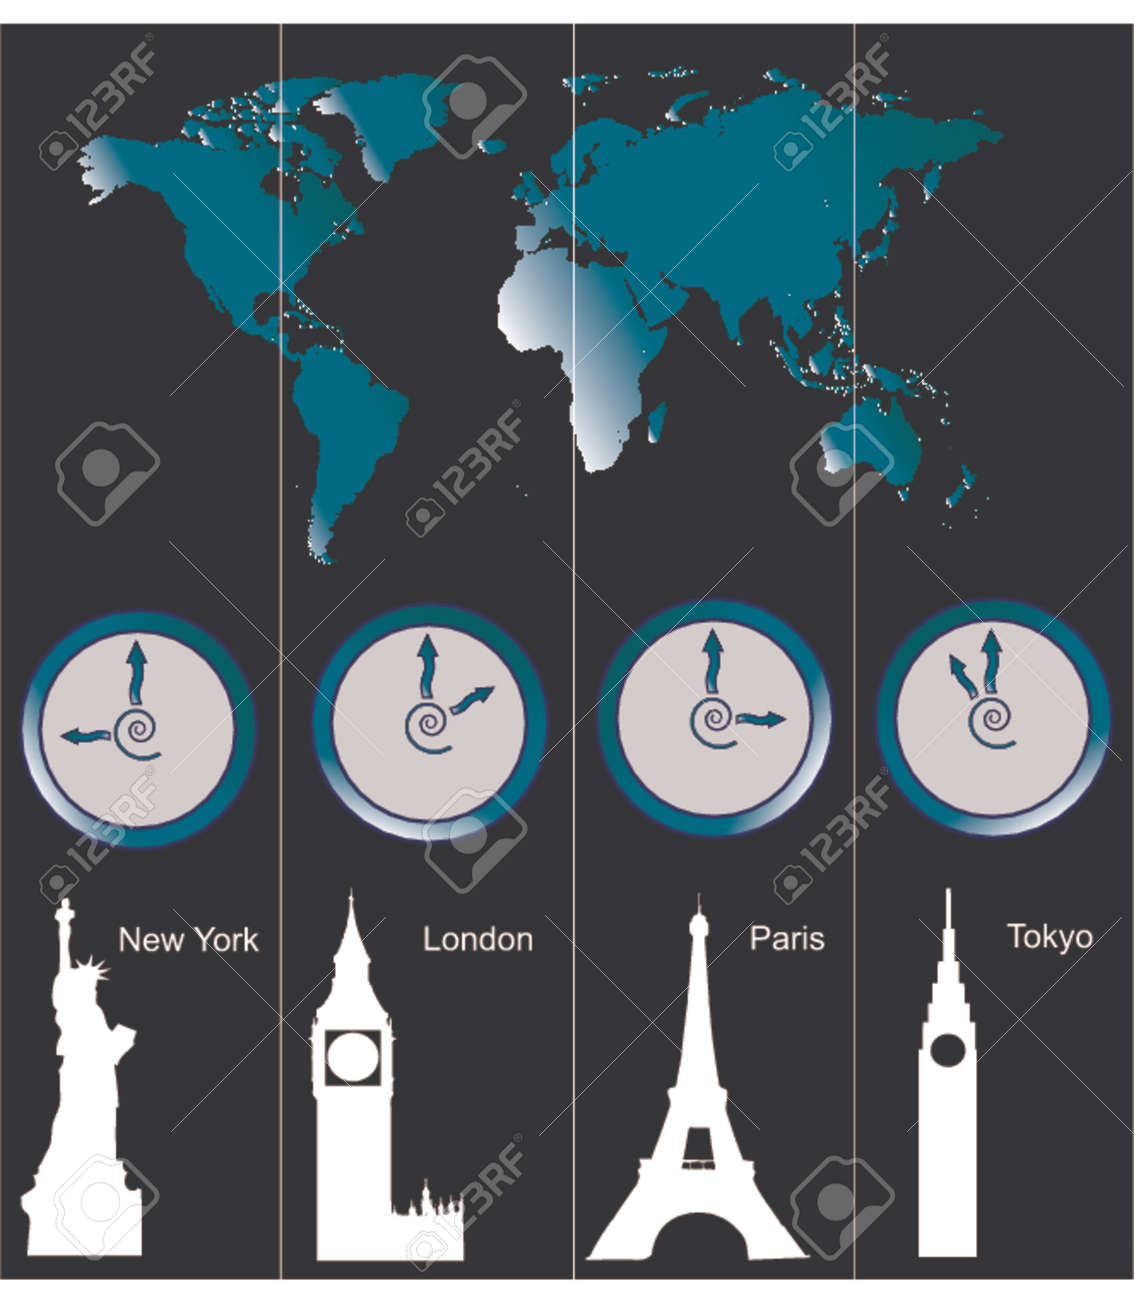 Vector image of a world map with clocks showing time of four vector vector image of a world map with clocks showing time of four cities new york london paris and tokyo and famous attractions in those cities publicscrutiny Image collections